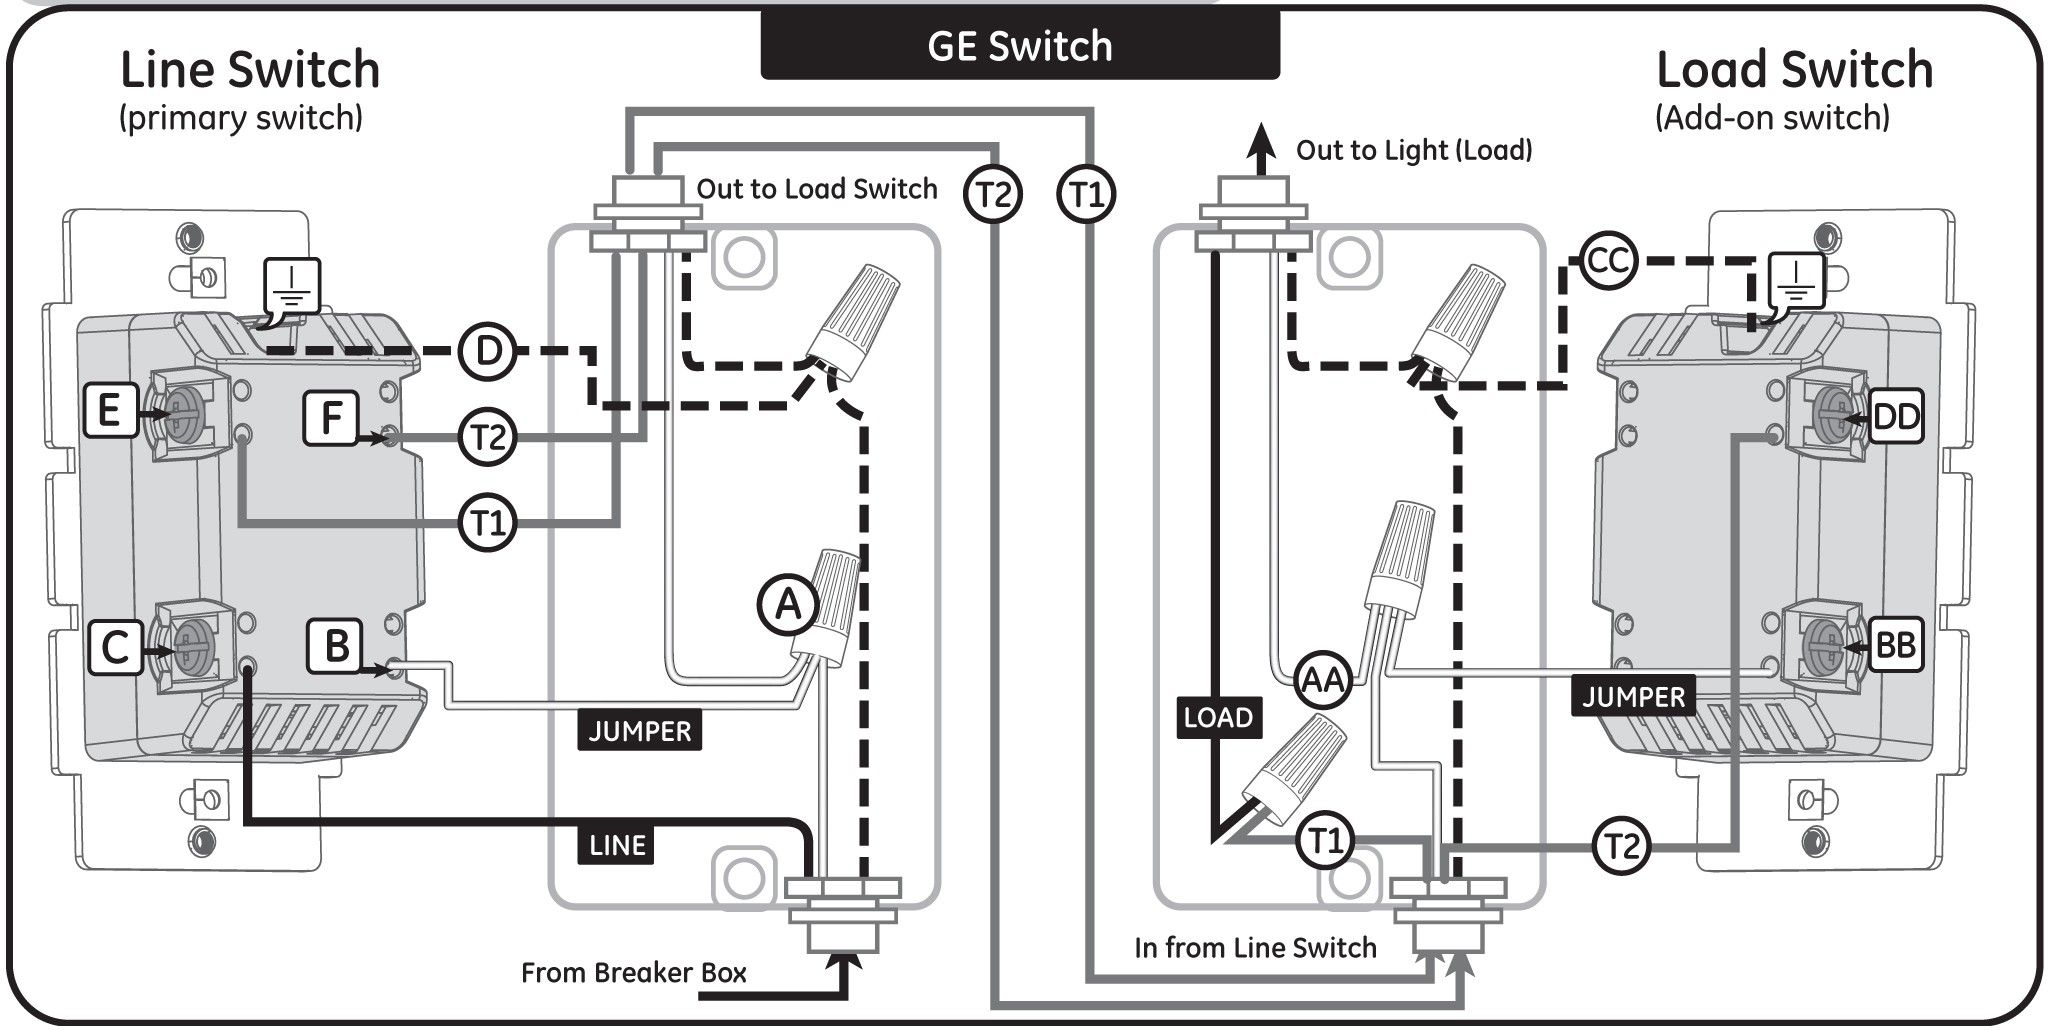 New Ge Dimmer Switch Wiring Diagram Con Imagenes